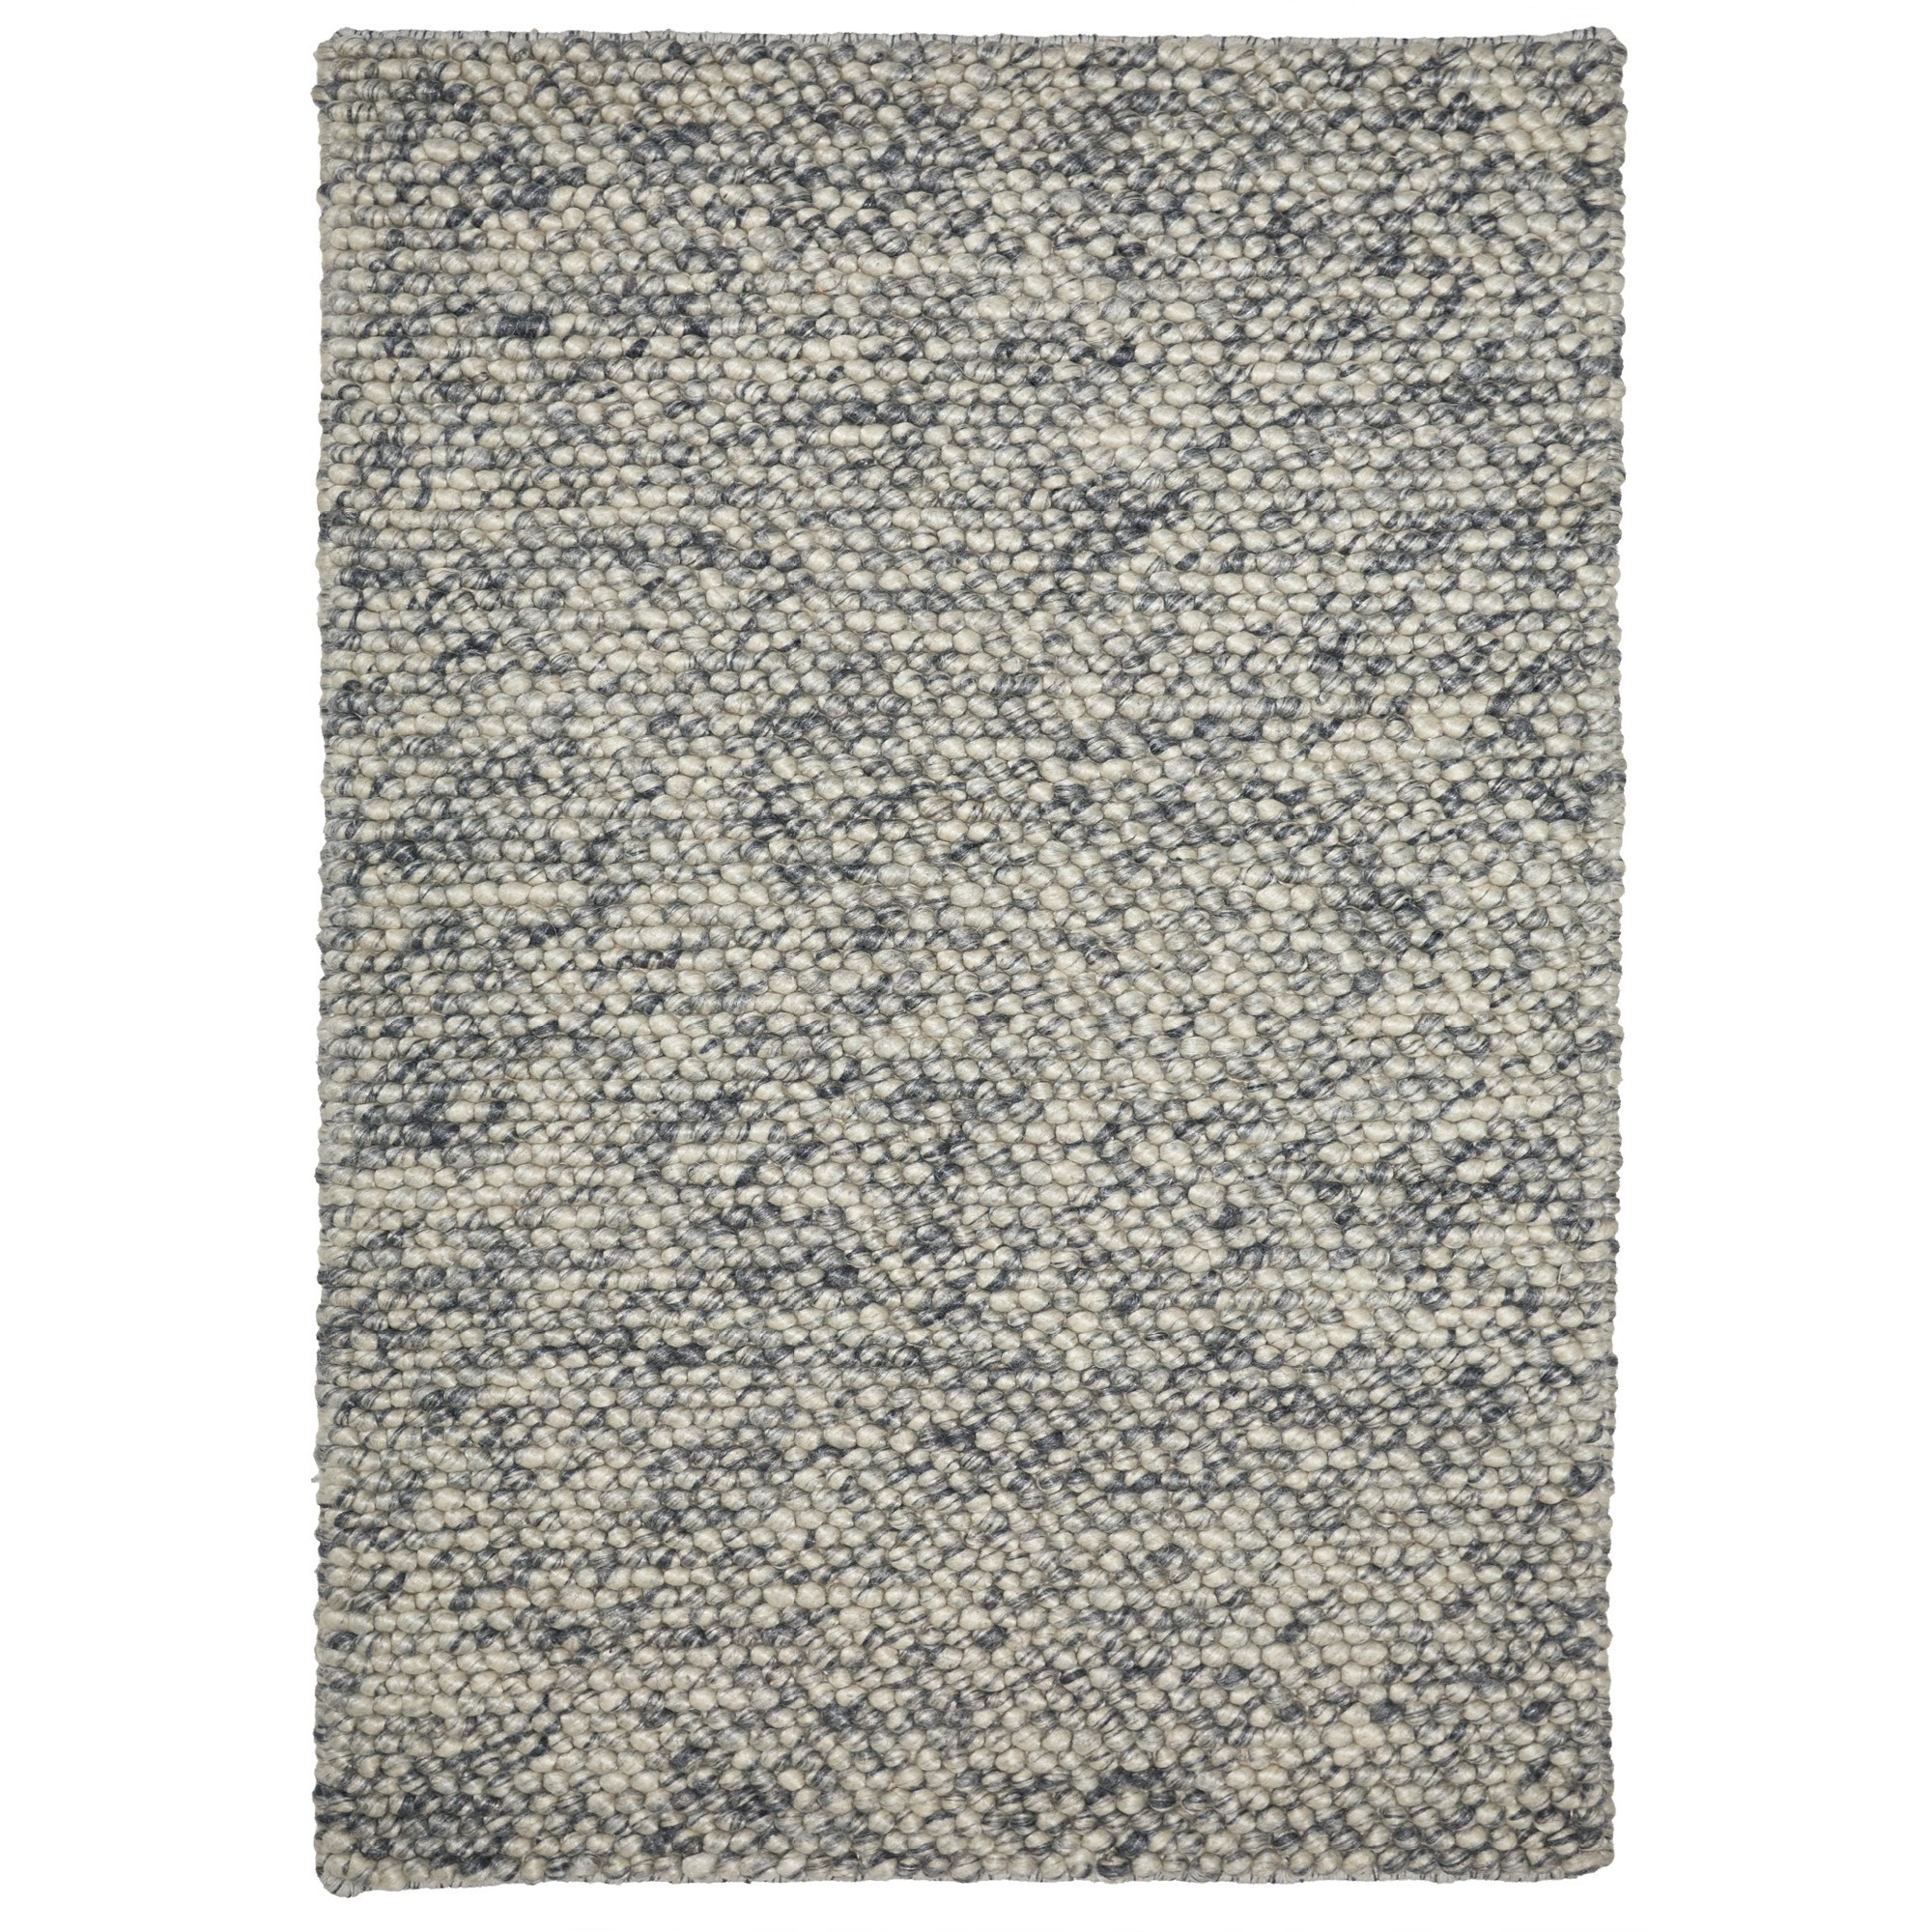 Aspen Handwoven Wool Rug, 160x110cm, Cloud